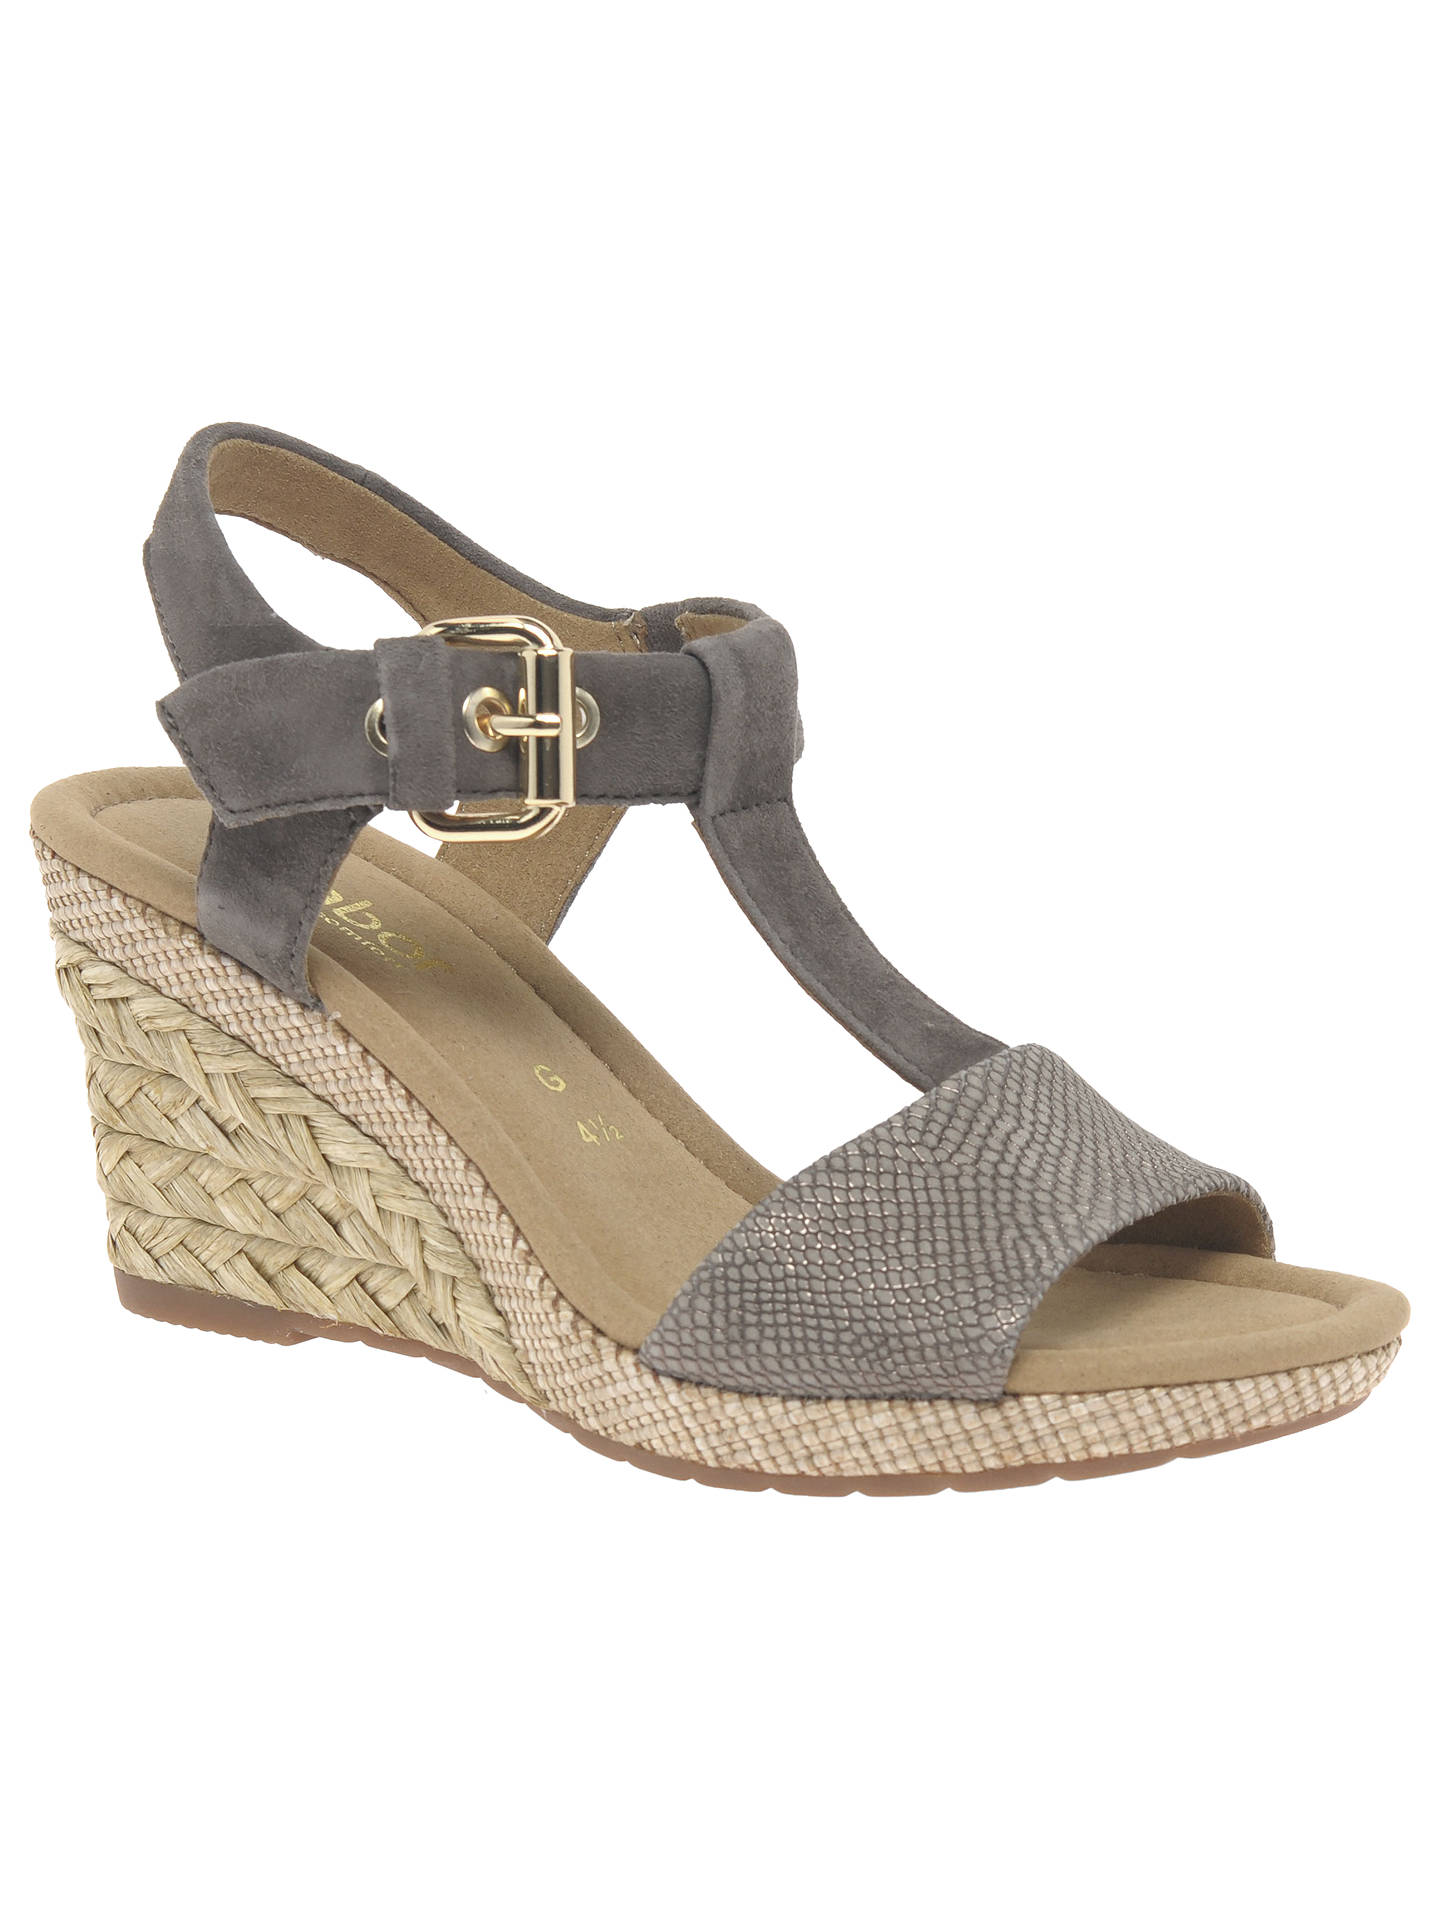 f8dbaafbf175 Gabor Karen Wide Fit Wedge Heeled Sandals at John Lewis   Partners